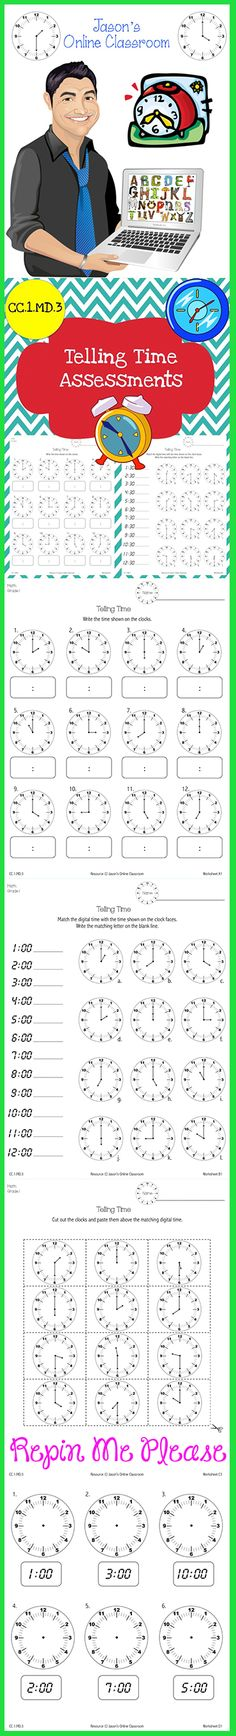 $4 - Common Core Aligned Time Assessments to help students learn how to tell time.  CC.1.MD.3 - Tell and write time in hours and half-hours using analog and digital clocks.  Check out this resource and more telling time products at Jason's Online Classroom.